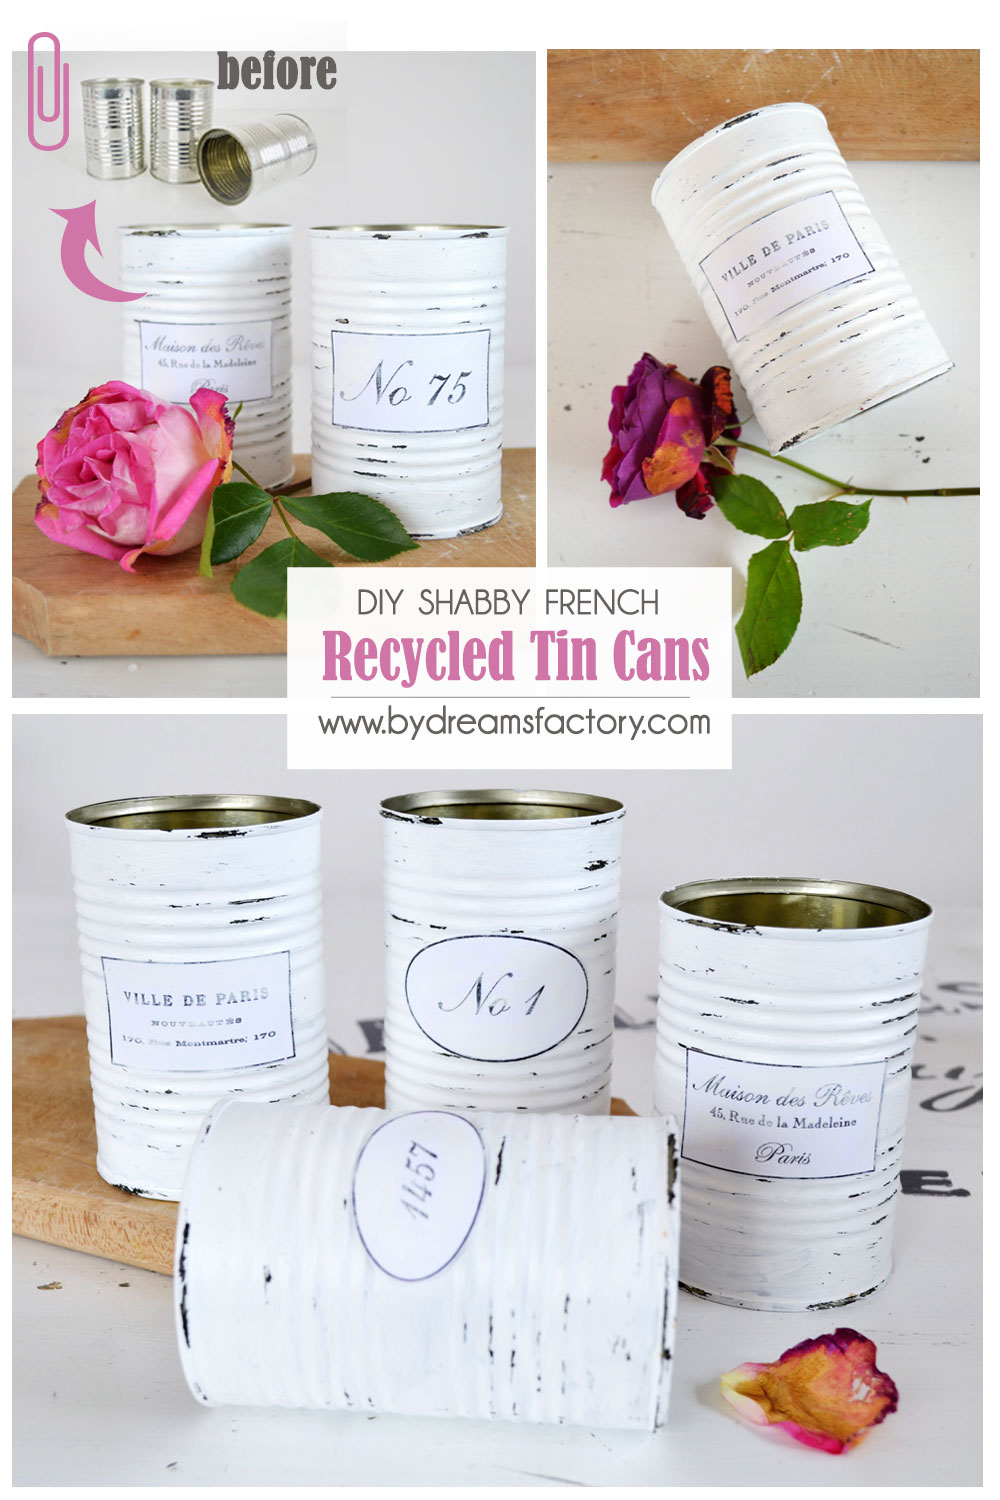 Learn how to make some amazing Shabby French recycled tin cans that you use all around your home. Get organized in a classy way!